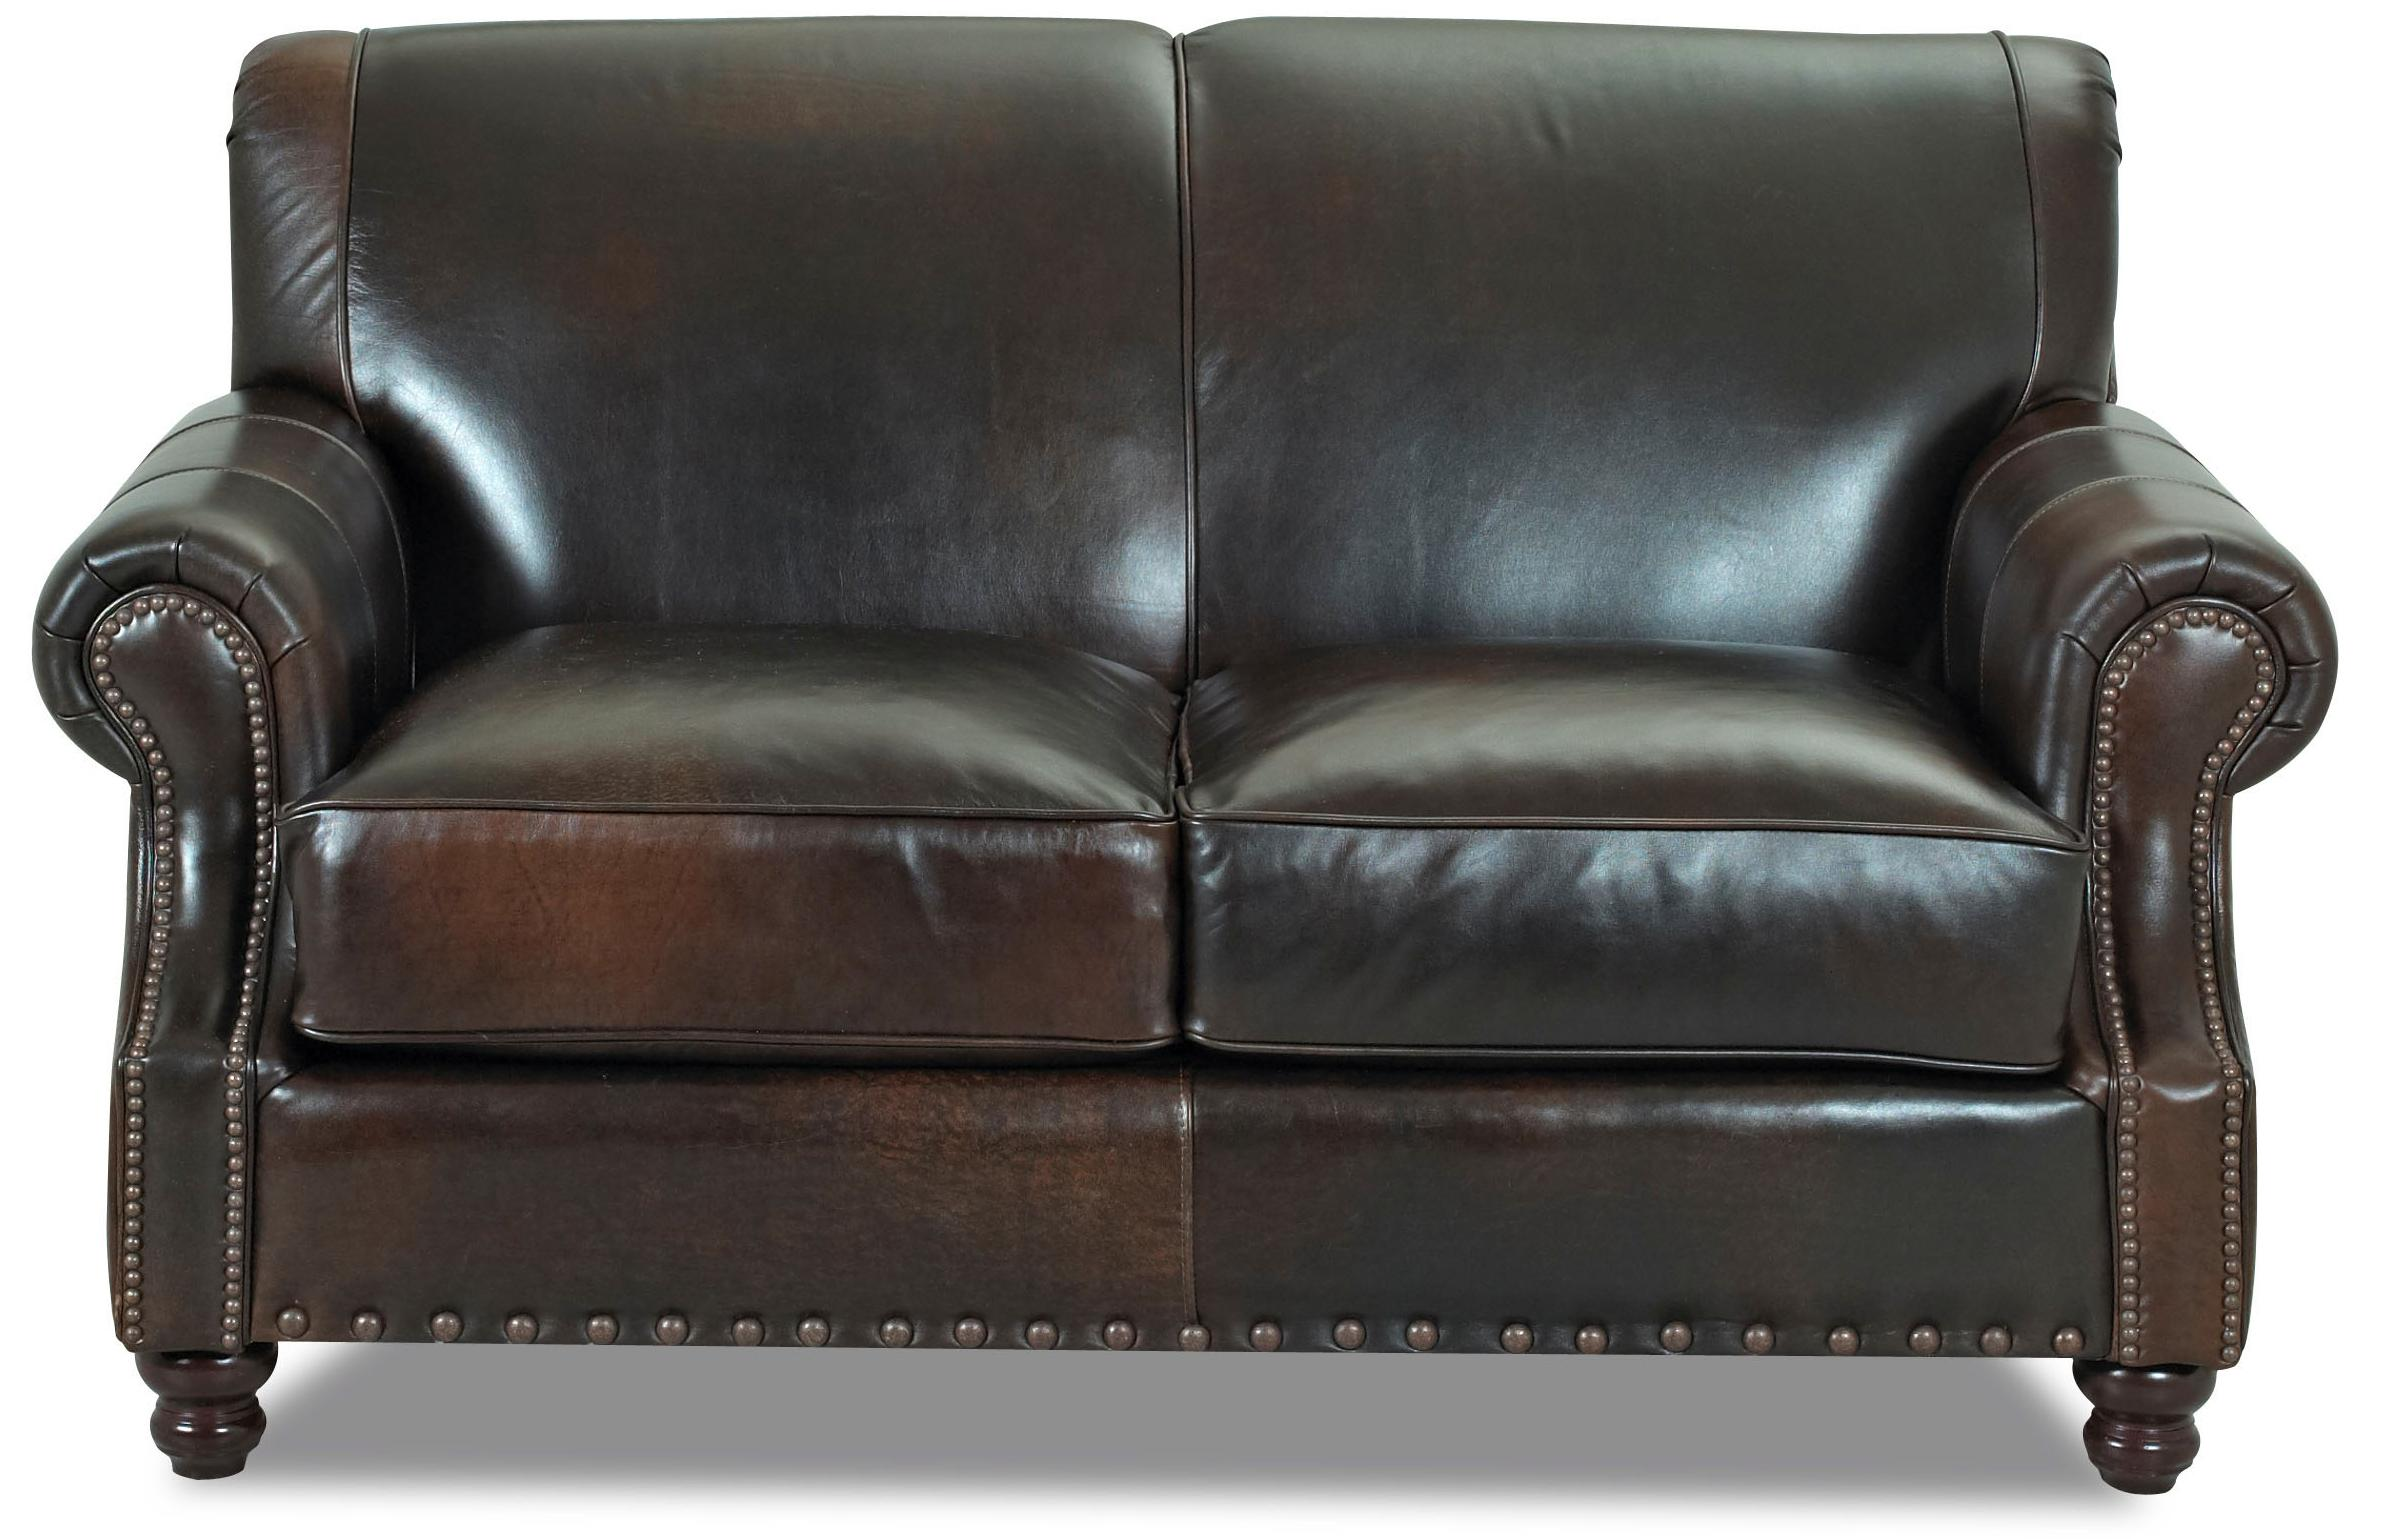 Traditional Leather Loveseat With Nail Head Trim By Klaussner Wolf And Gardiner Wolf Furniture